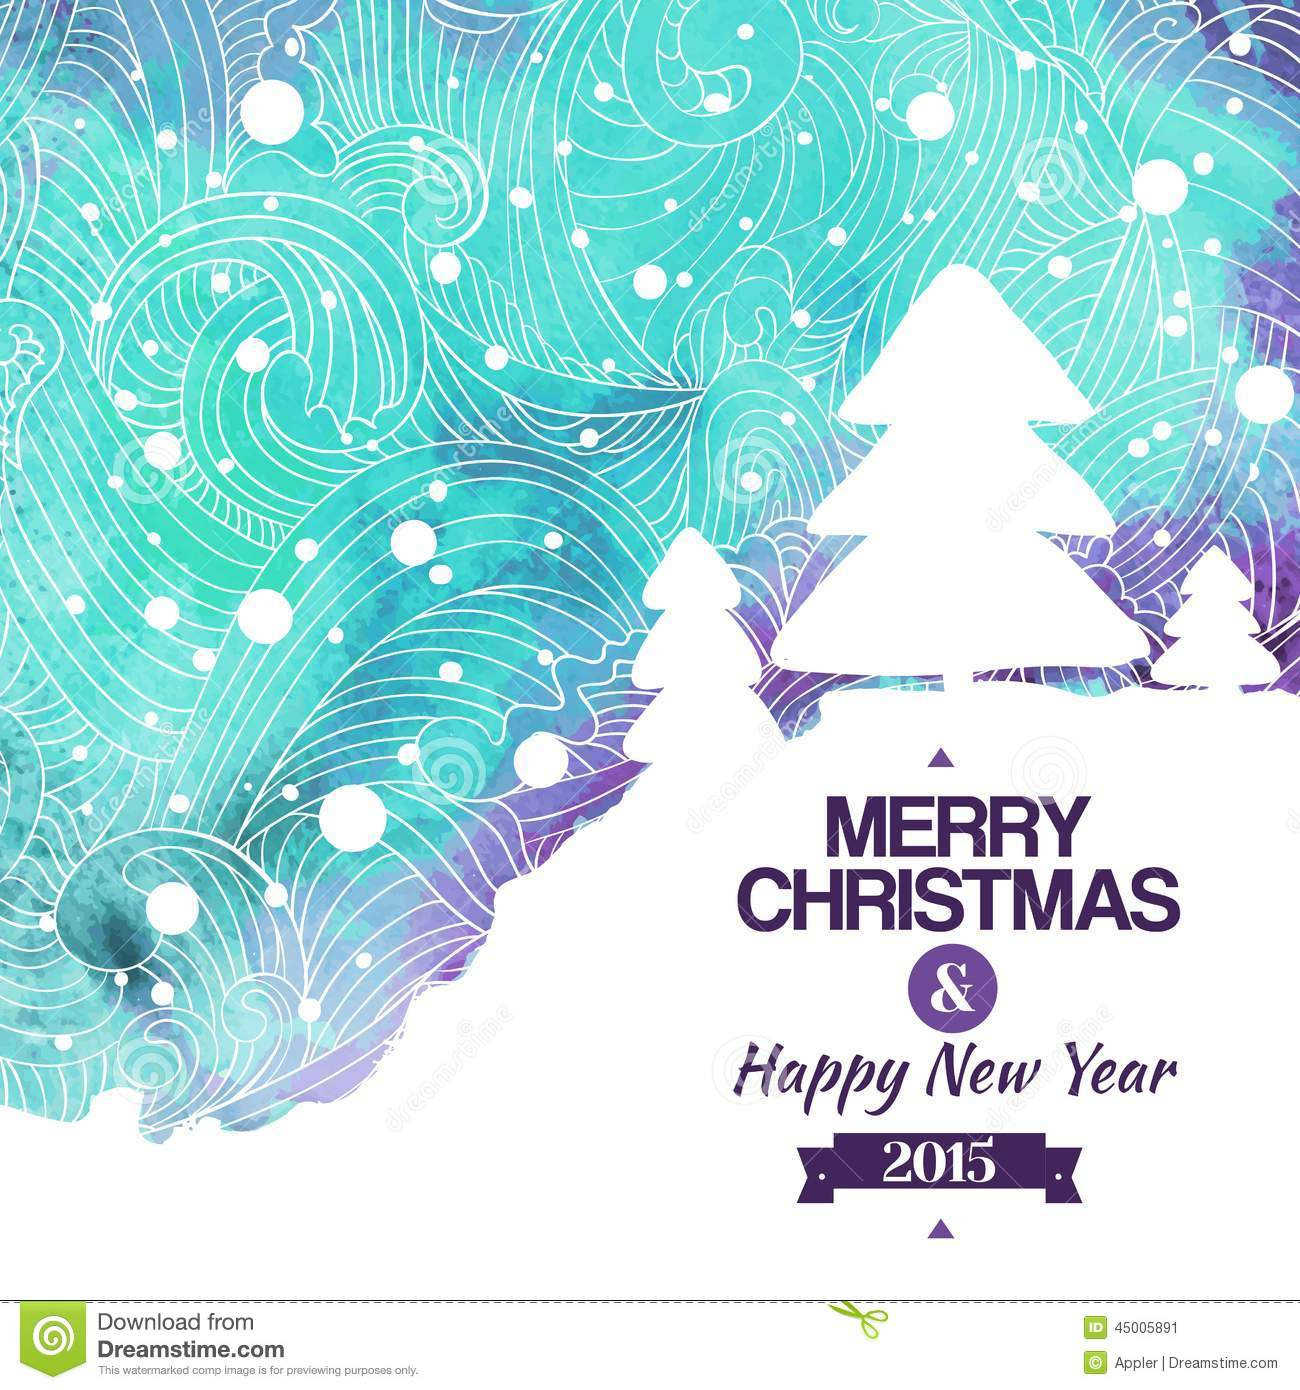 Merry Christmas Watercolor Drawing Background Stock Vector - Image ...